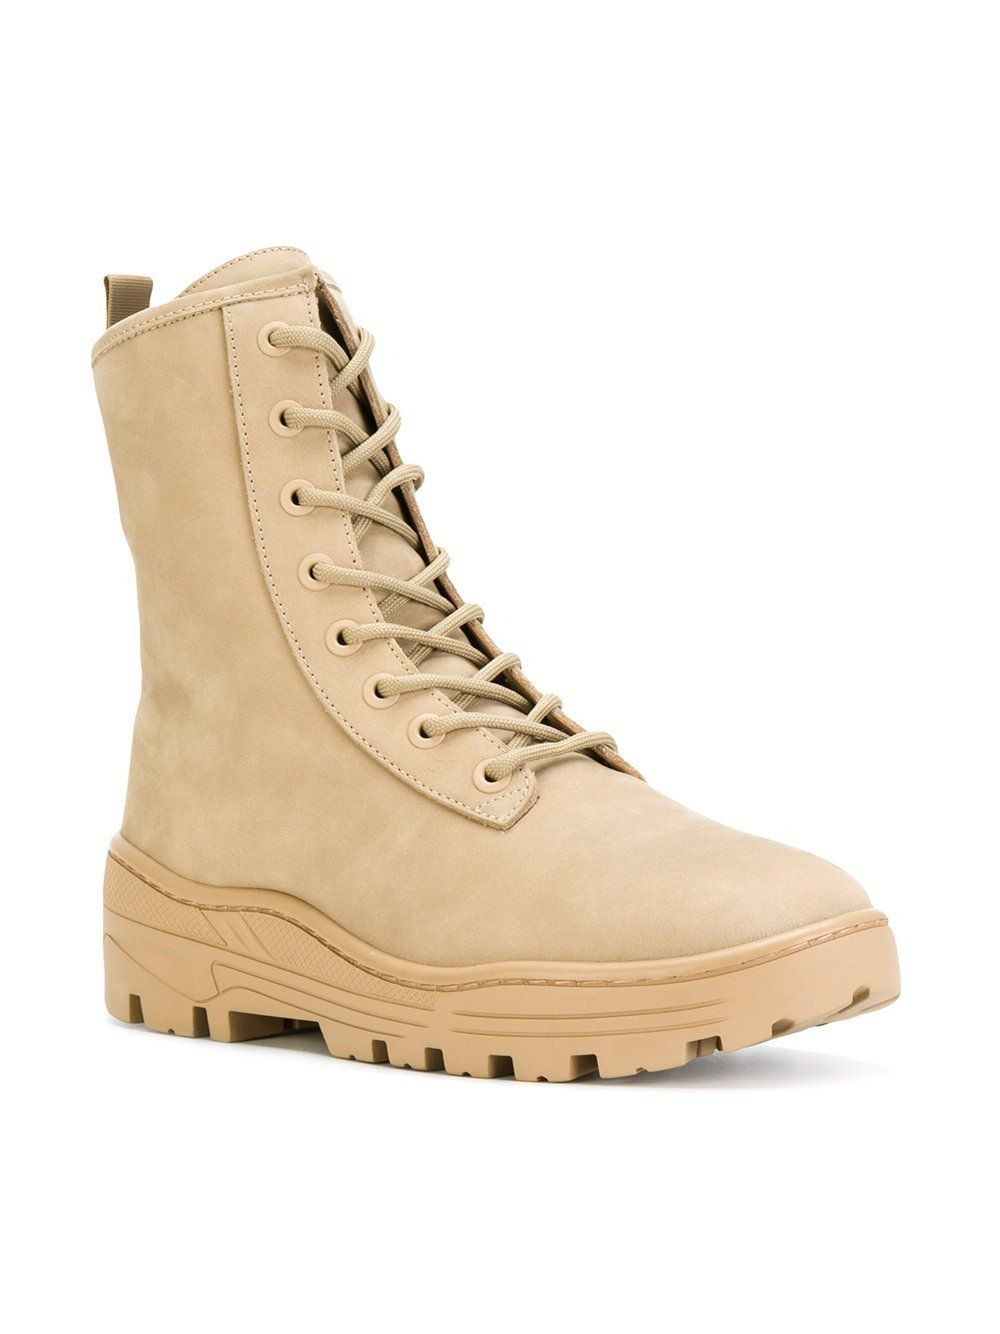 fe7ae6aca59  525.00 USD Taupe Nubuck Combat Boot   YEEZY Men s boots in Taupe from YEEZY  Season 5